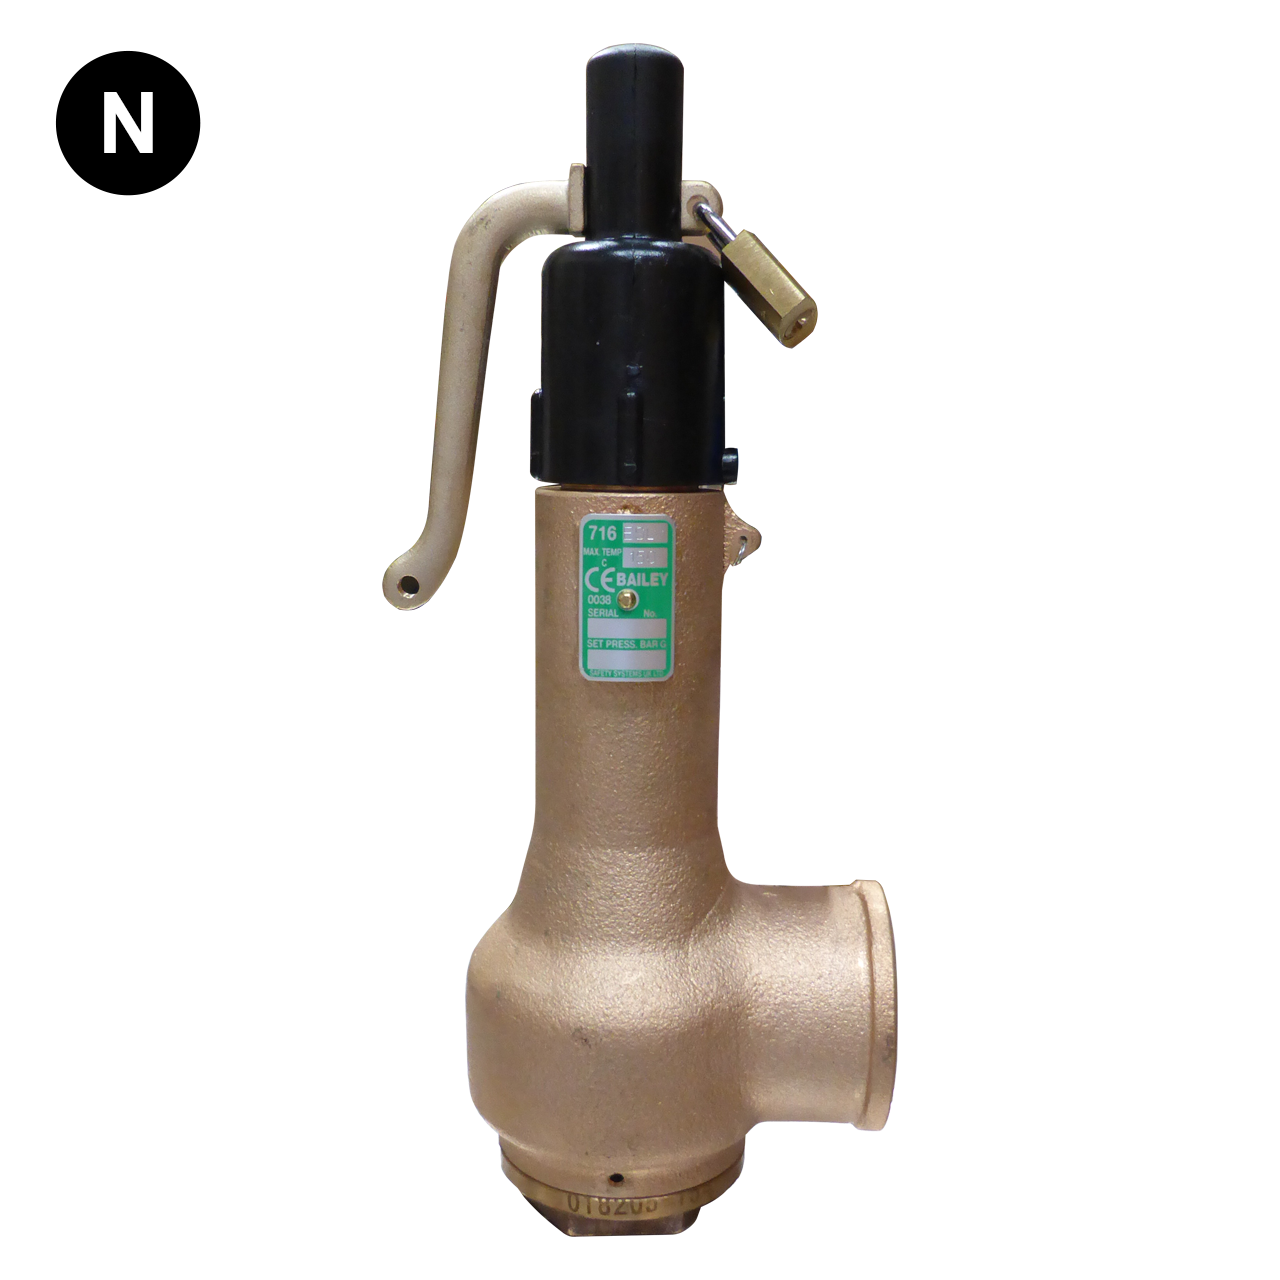 Bailey 716 Safety Relief Valve Flowstar Uk Limited